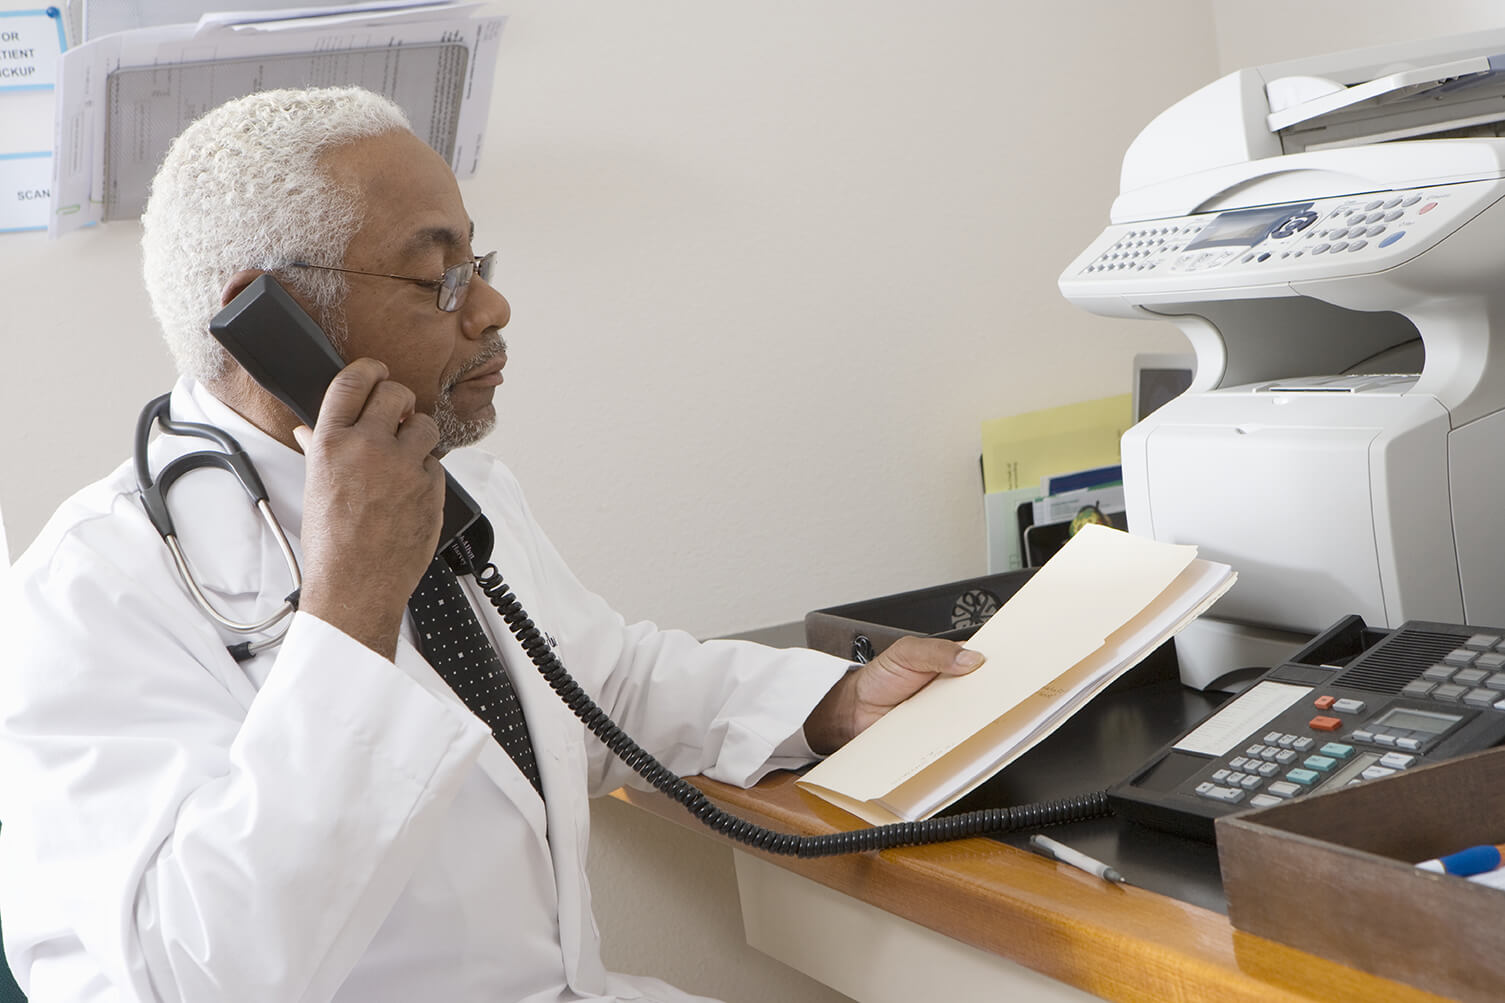 Don't Let Faxing Disrupt Your Healthcare Workflow